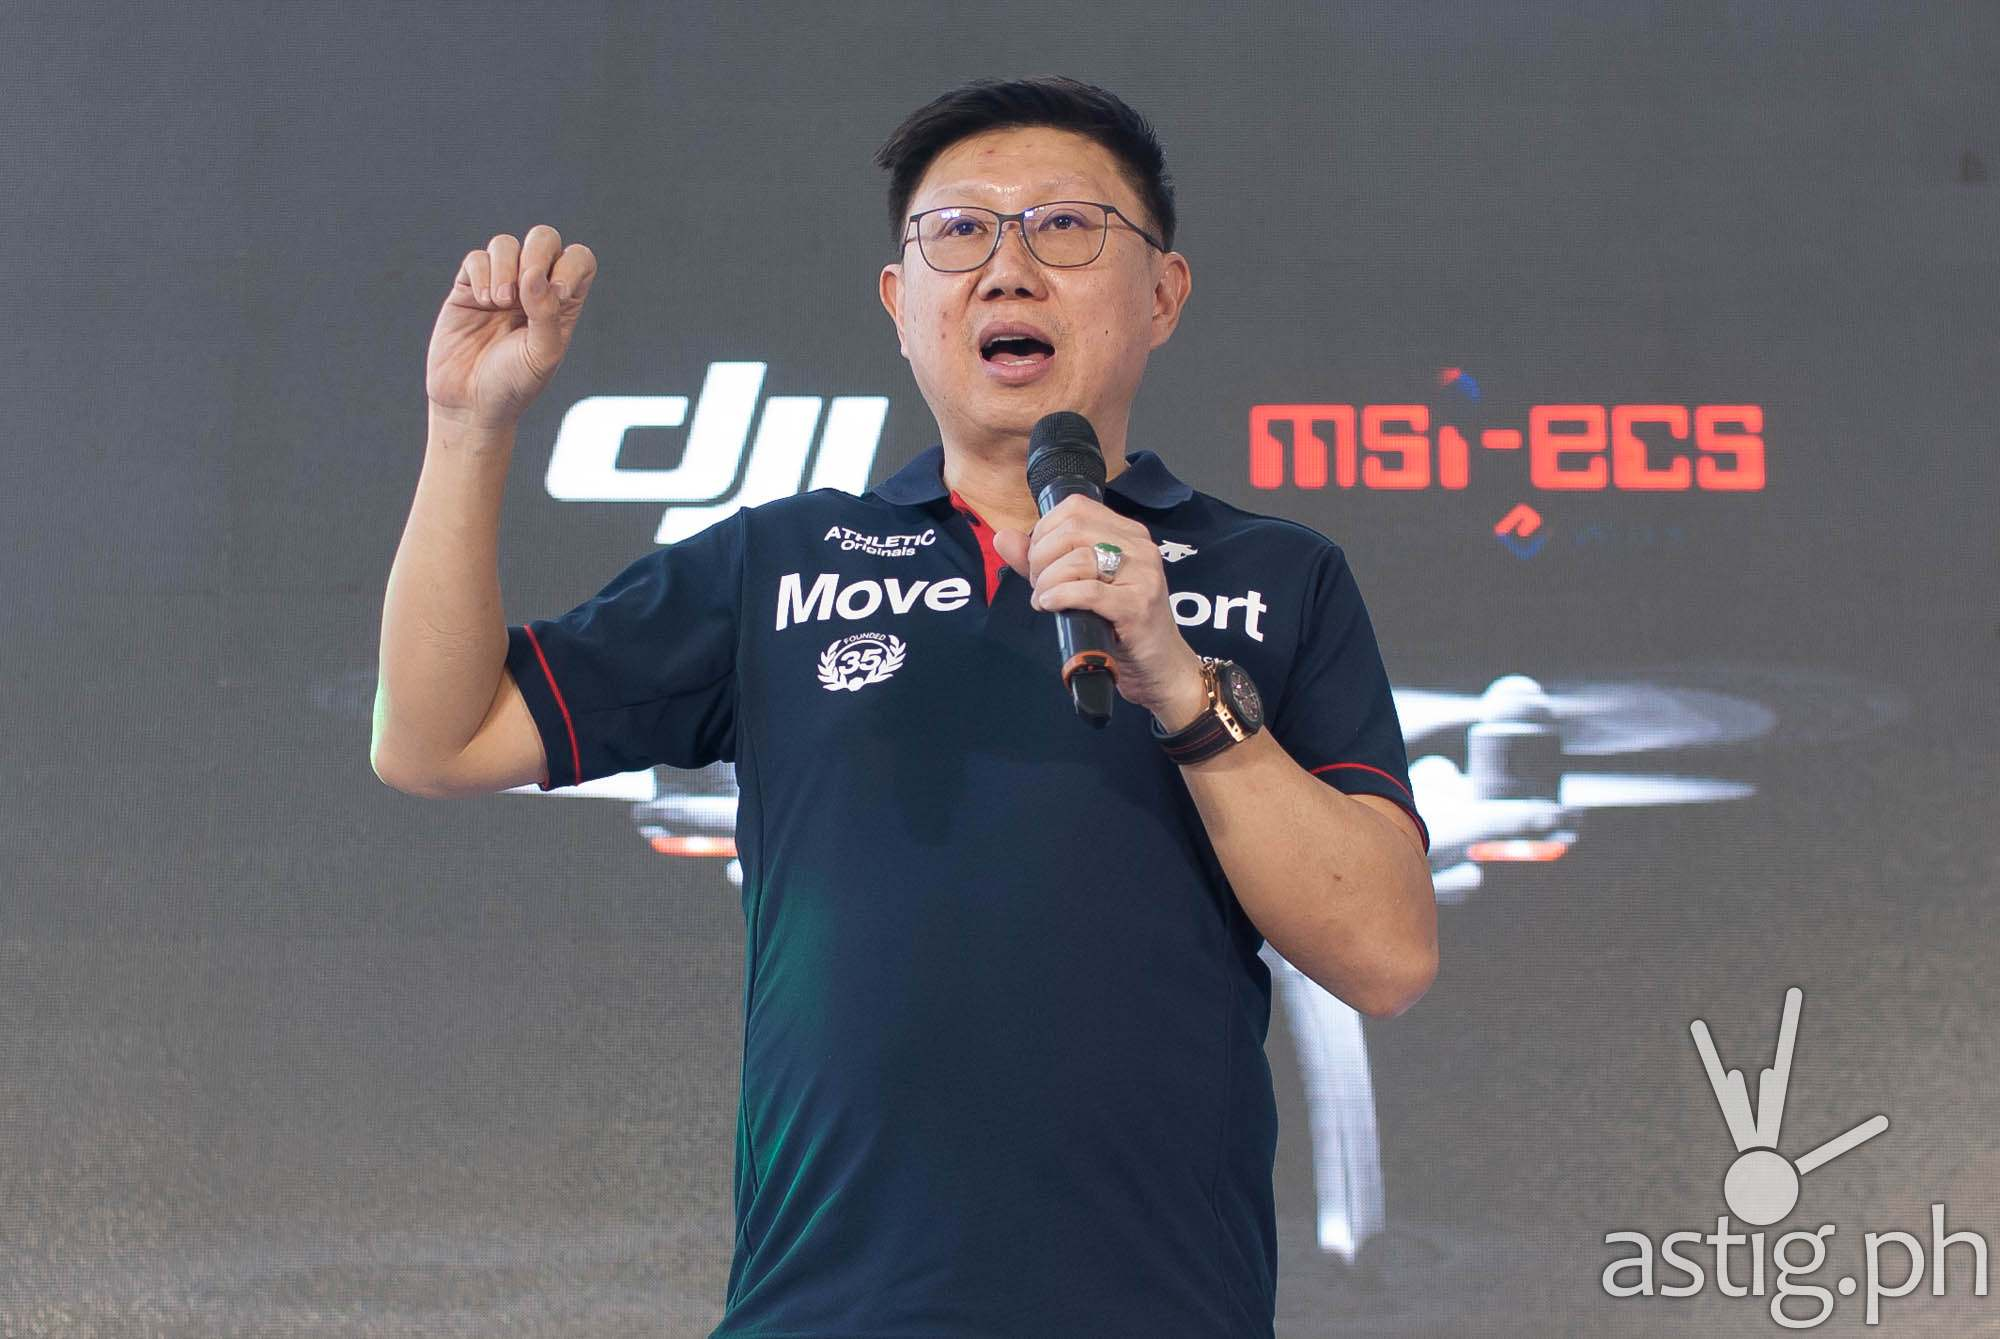 Jimmy Go, president and CEO, MSI-ECS Philippines